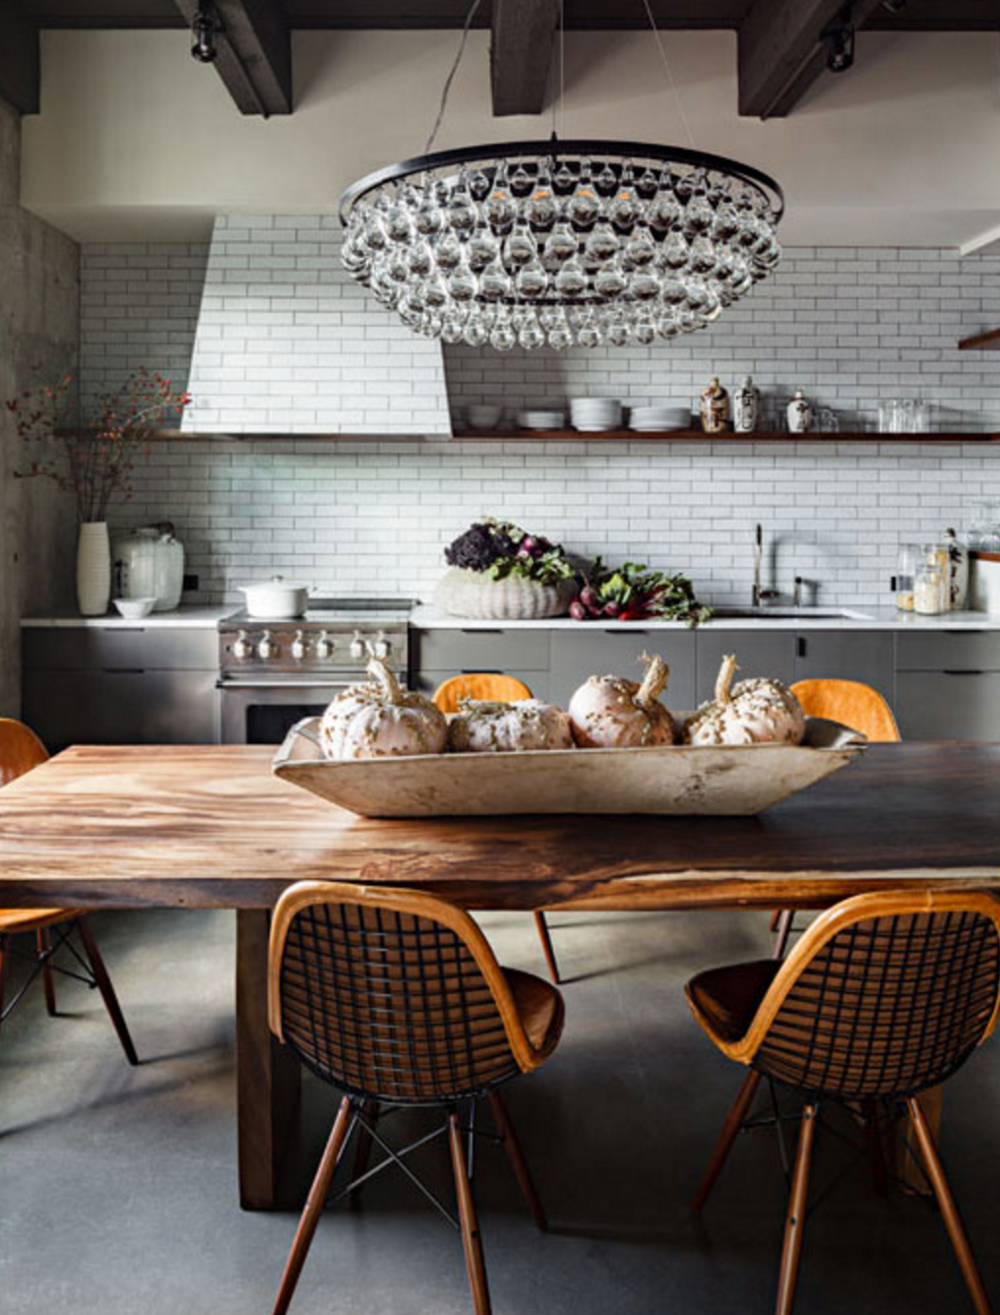 Swoon. Love the texture in this room -- the threaded Eames dining chairs, the milky way patterns on the rustic dining, and the gorgeous subway tiles. The squash centerpiece is the perfect decorative touch for Fall.